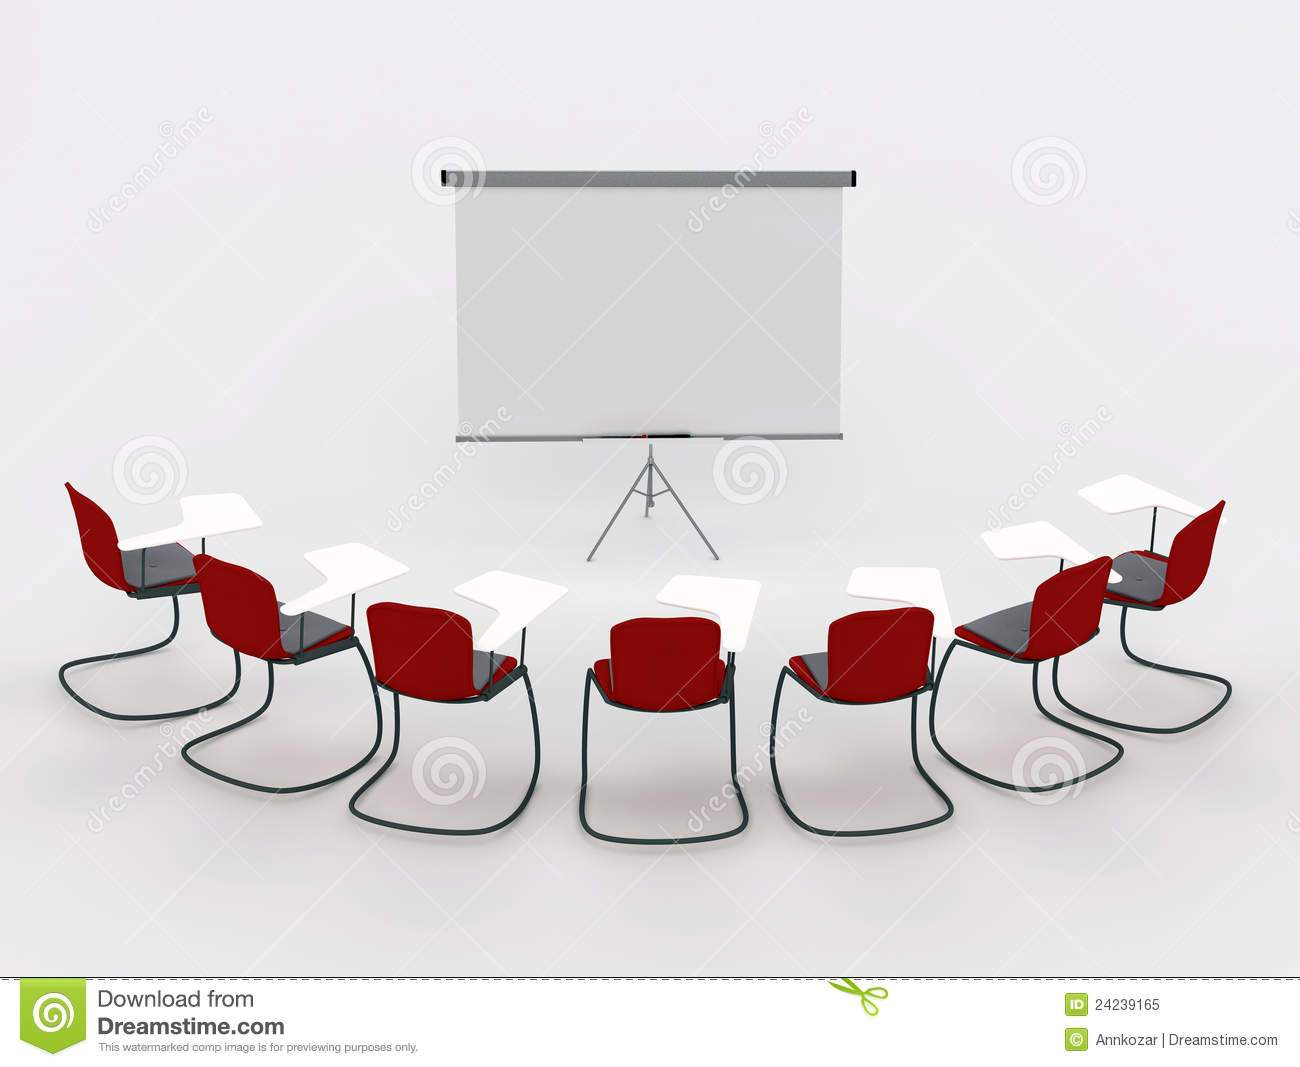 Training room clipart picture transparent library Training room clipart 8 » Clipart Portal picture transparent library